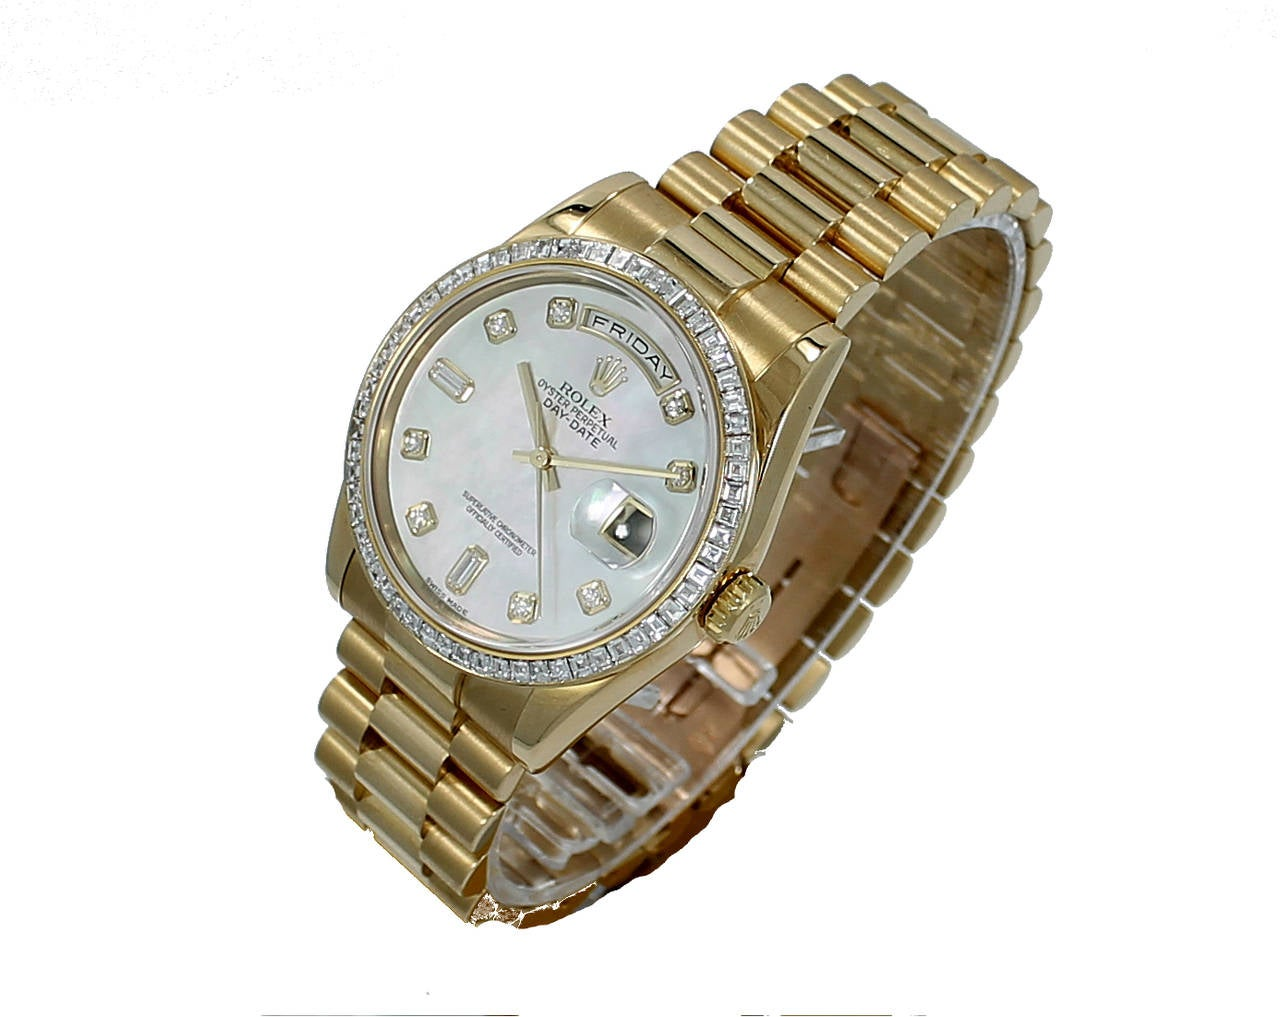 Rolex Oyster Perpetual Day-Date 36mm Watch in Yellow Gold. This beautiful Rolex has a Mother of Pearl Diamond Marker Dial and a 60 Baguette Diamond Bezel all original Rolex. It is Circa  2000, Serial#P190XXX. Watch has Box & Papers.